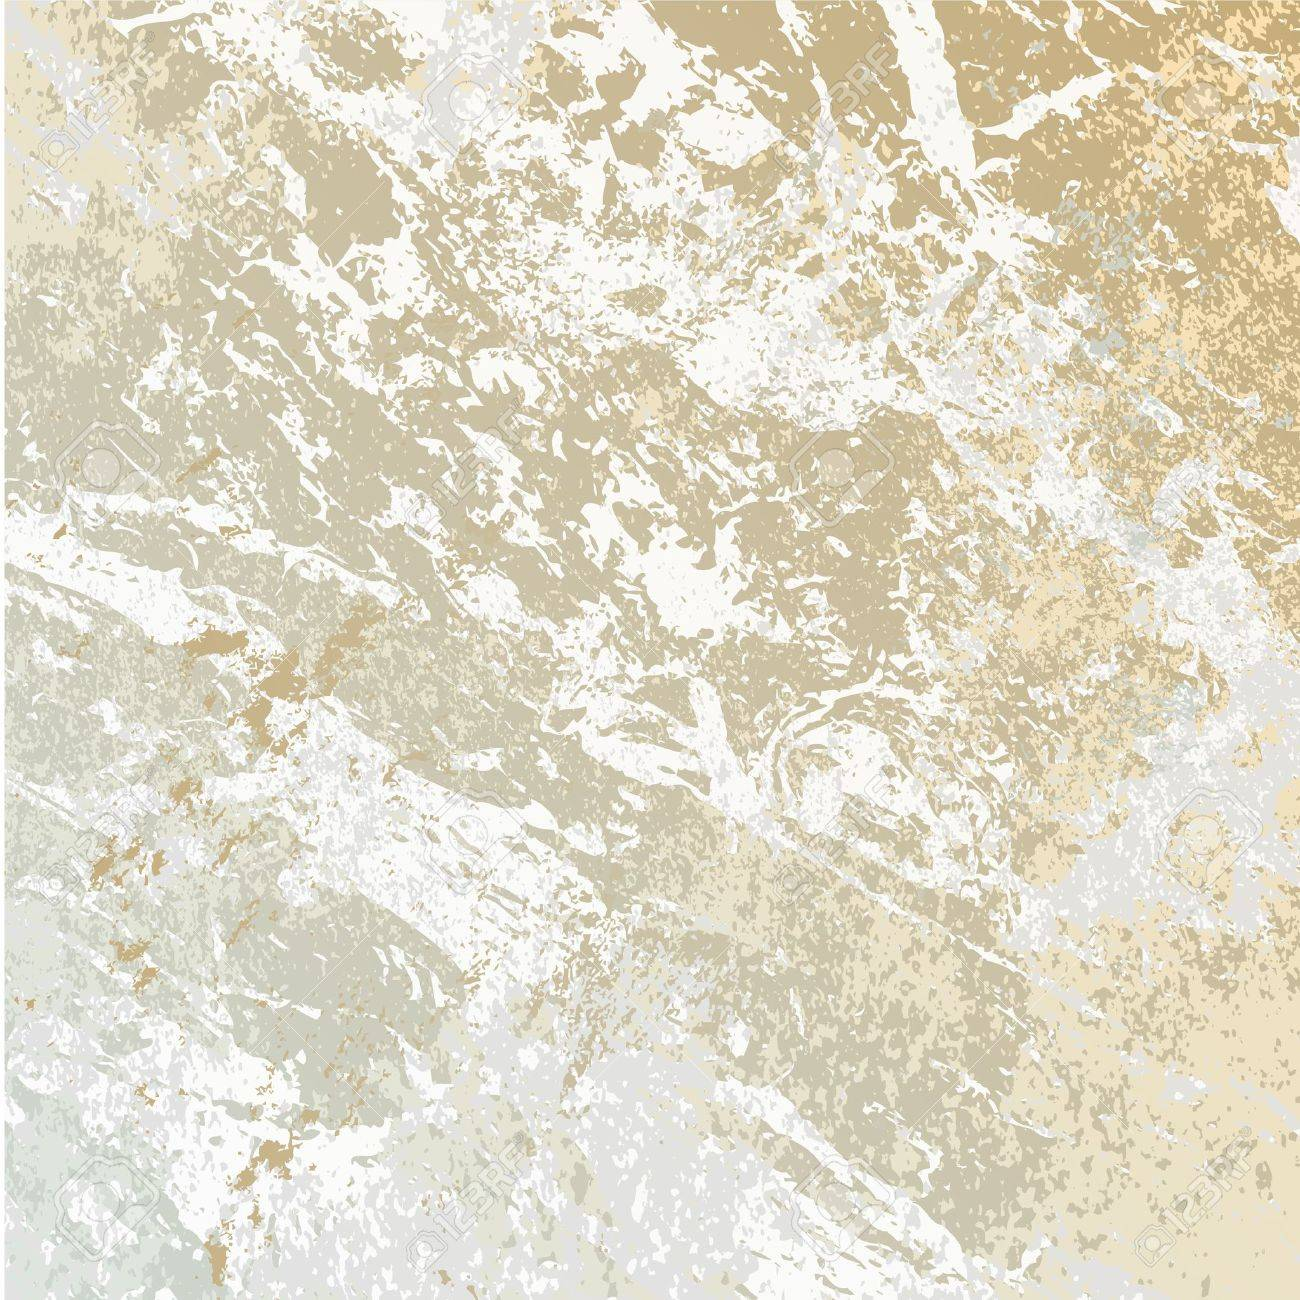 marble texture background - 21024421